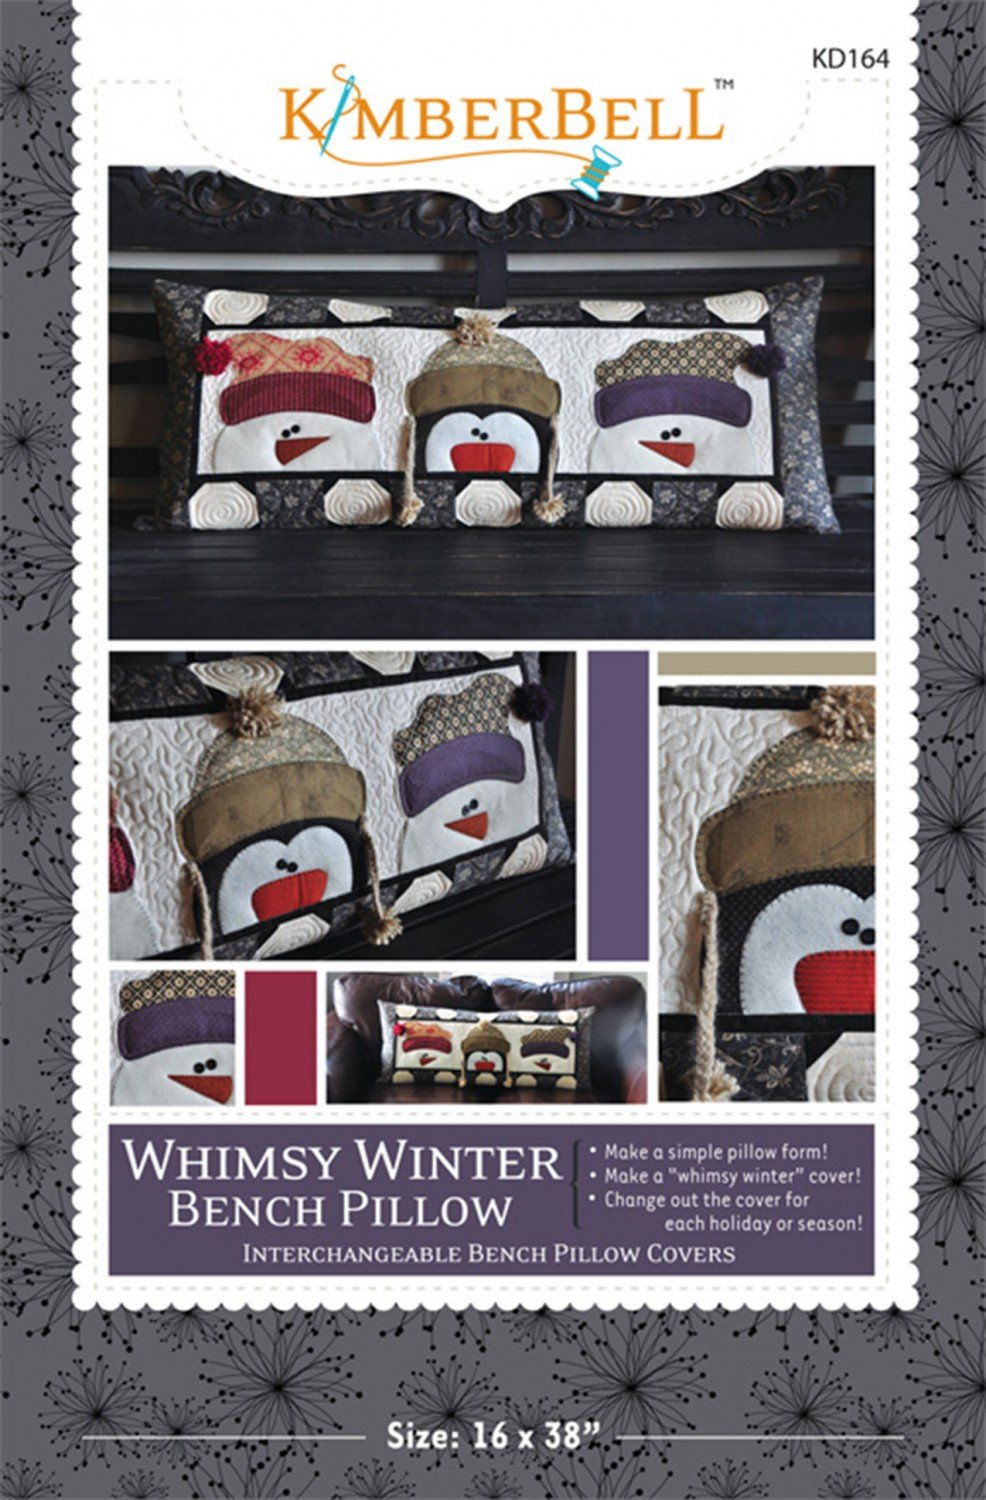 Whimsy Winter Bench Pillow by Kimberbell